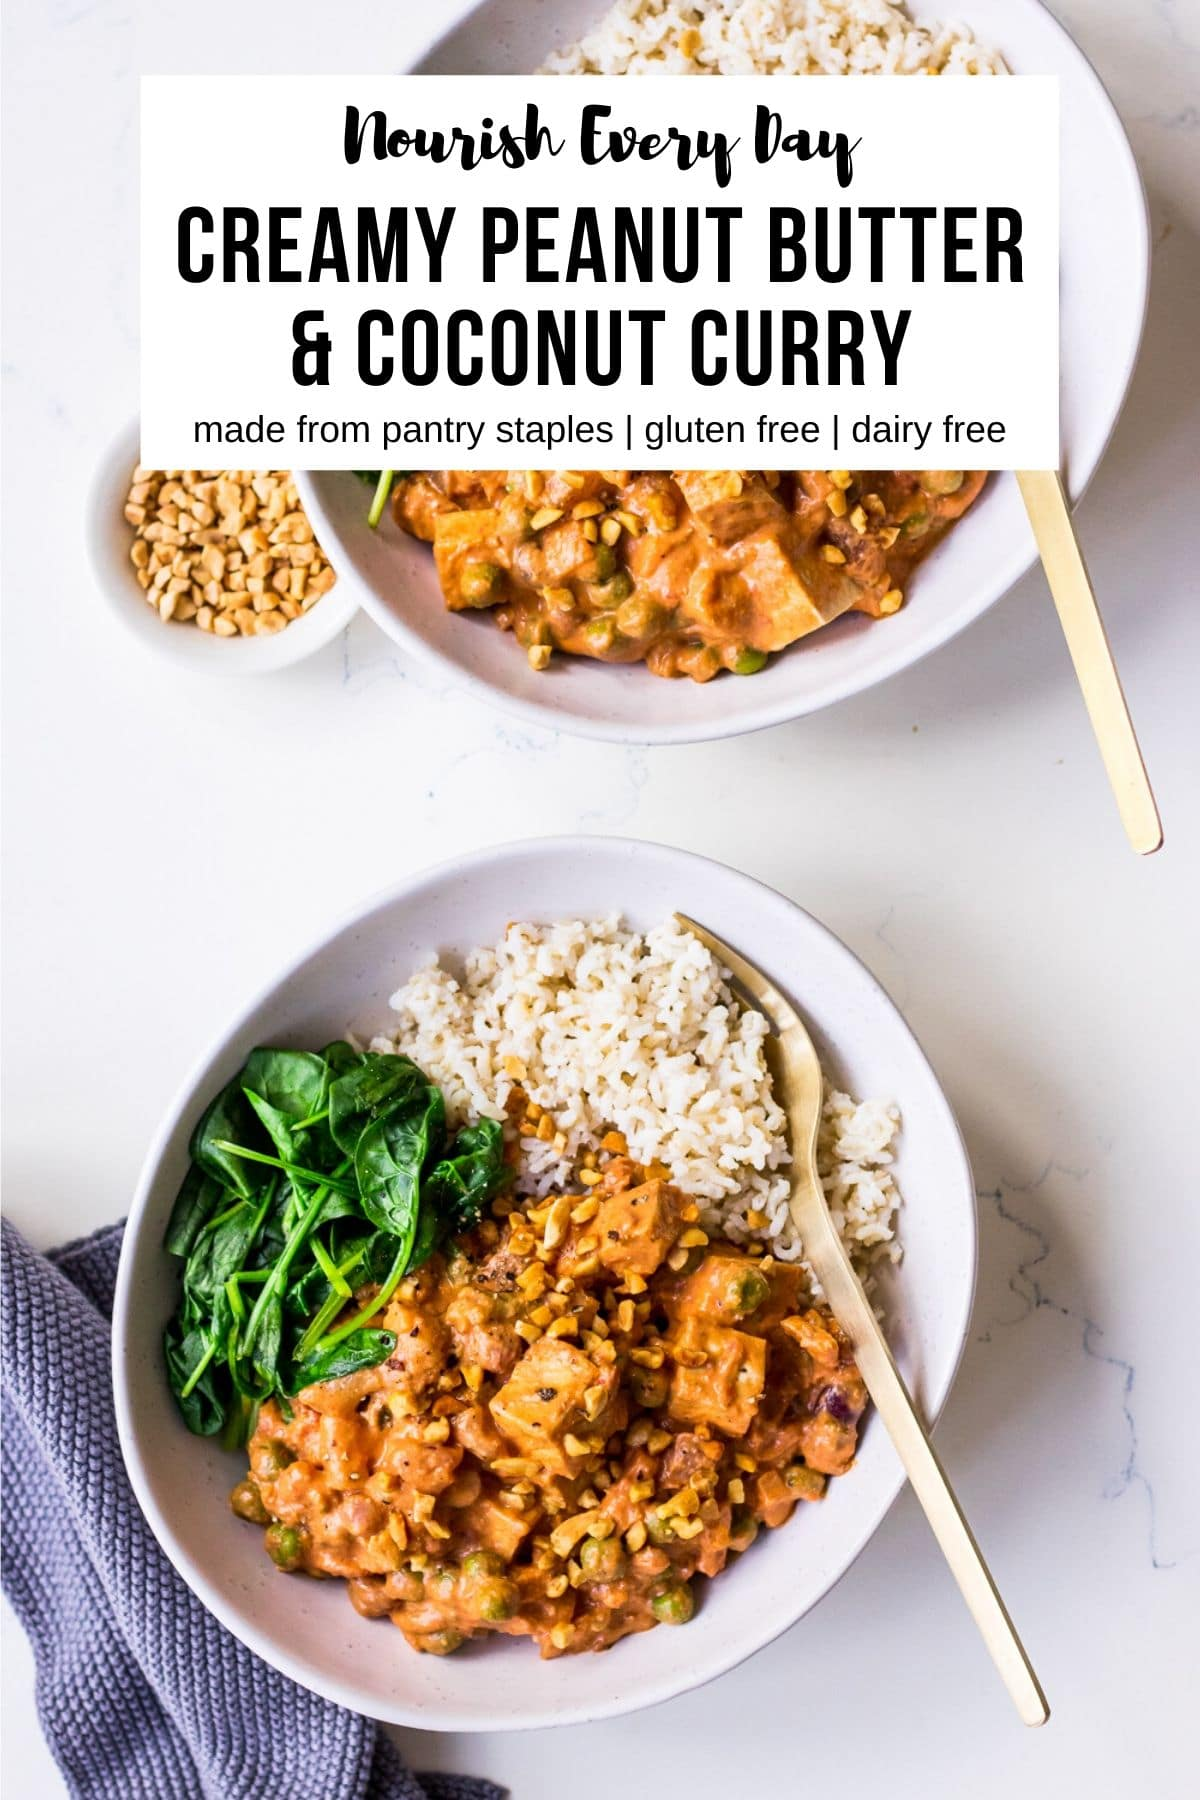 Creamy Peanut Butter Coconut Curry on Nourish Every Day